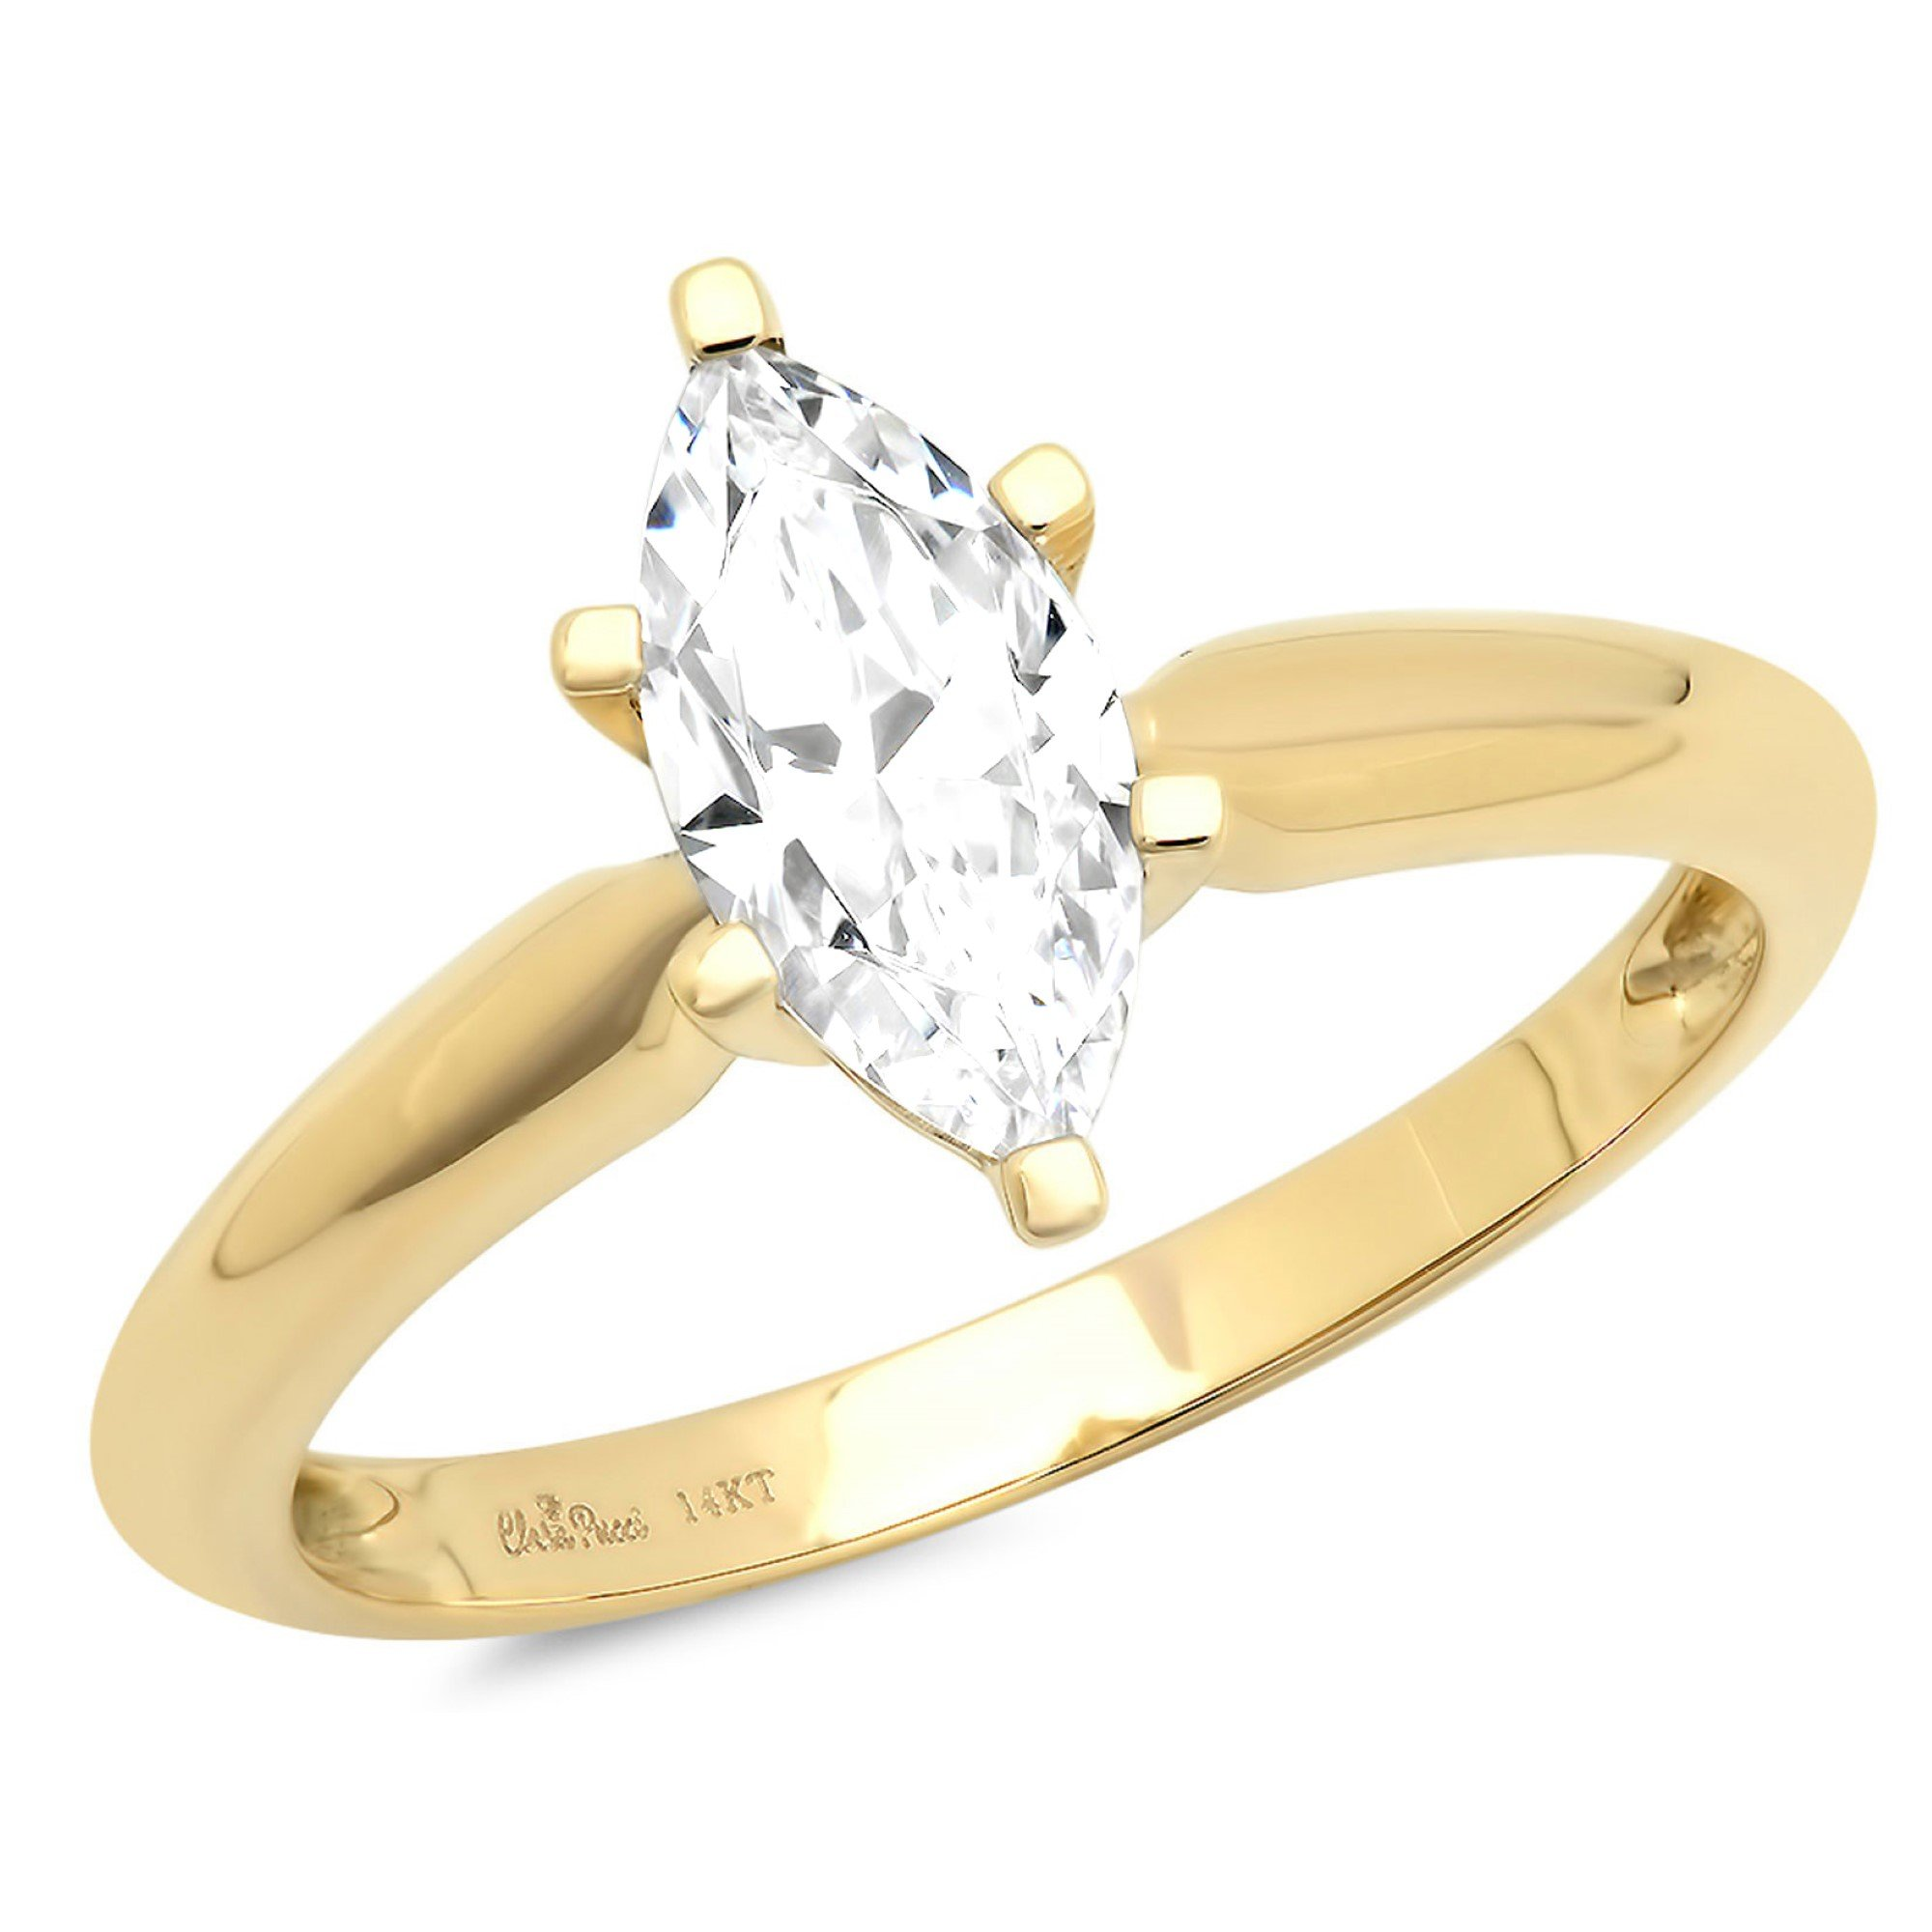 14k Yellow Gold 1.47cttw Marquise Solitaire Moissanite Engagement Promise Ideal VVS1 6-Prong Ring Statement Anniversary Bridal Wedding, Size 7.25